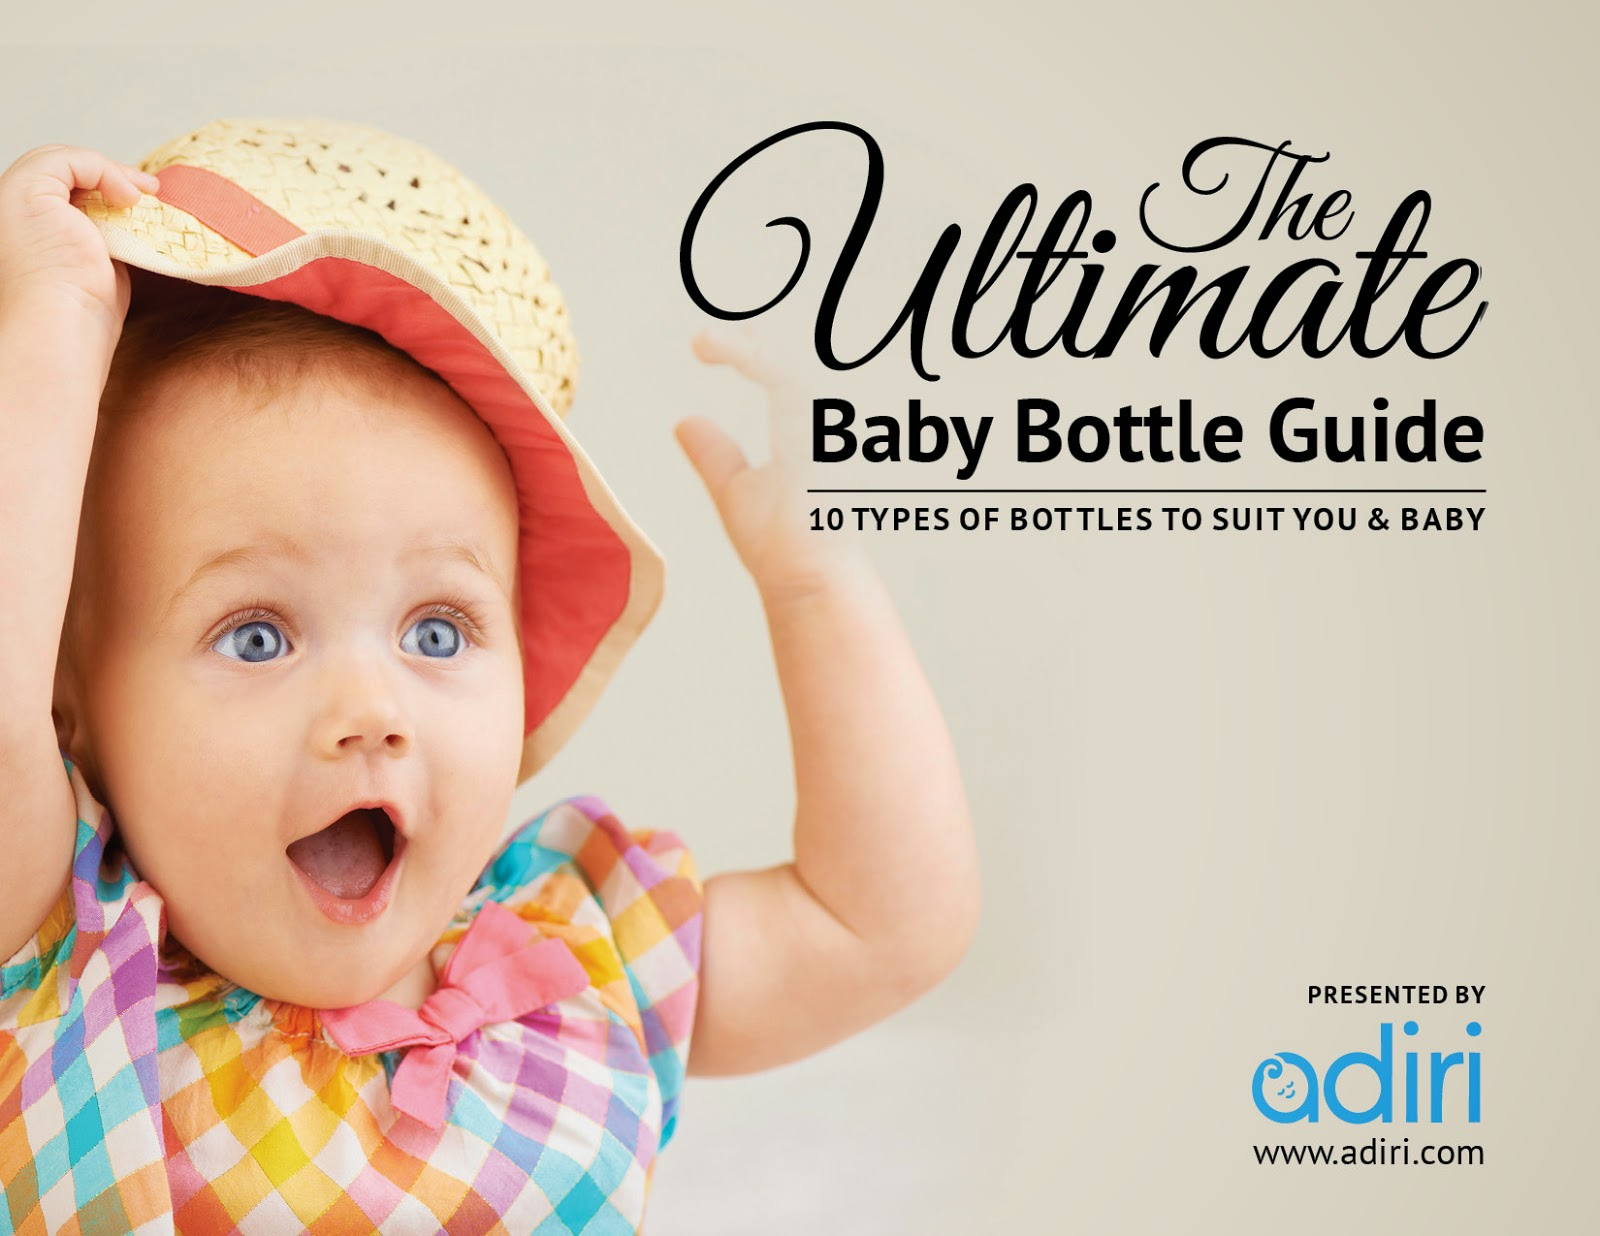 The Ultimate Baby Bottle Guide FREE download. Everything you may want to know about finding the right bottles for your baby.